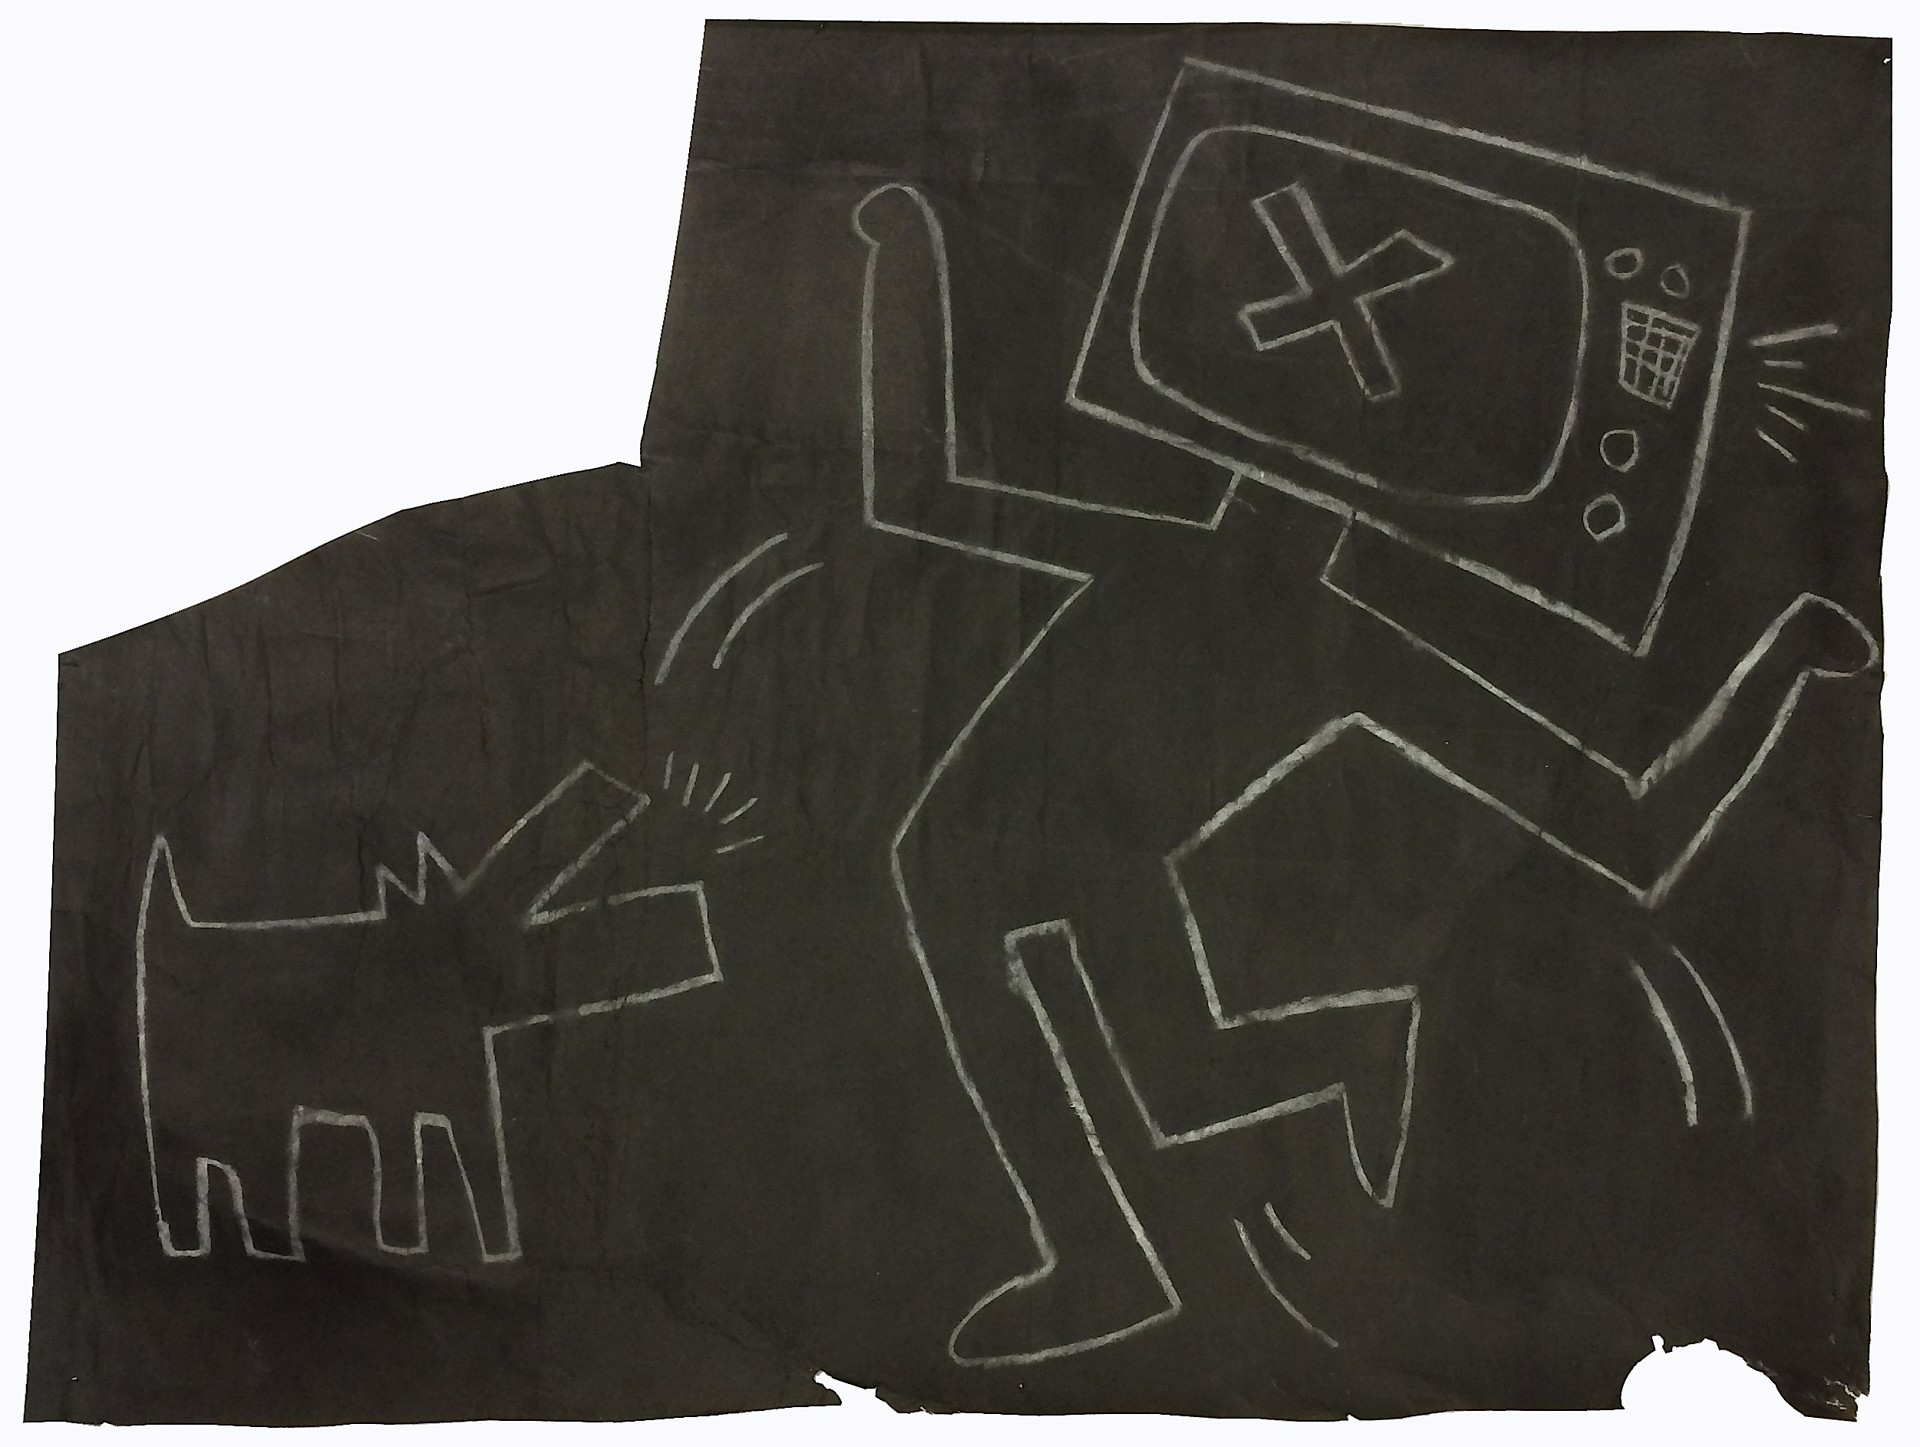 TV Man with Barking Dog by Keith Haring